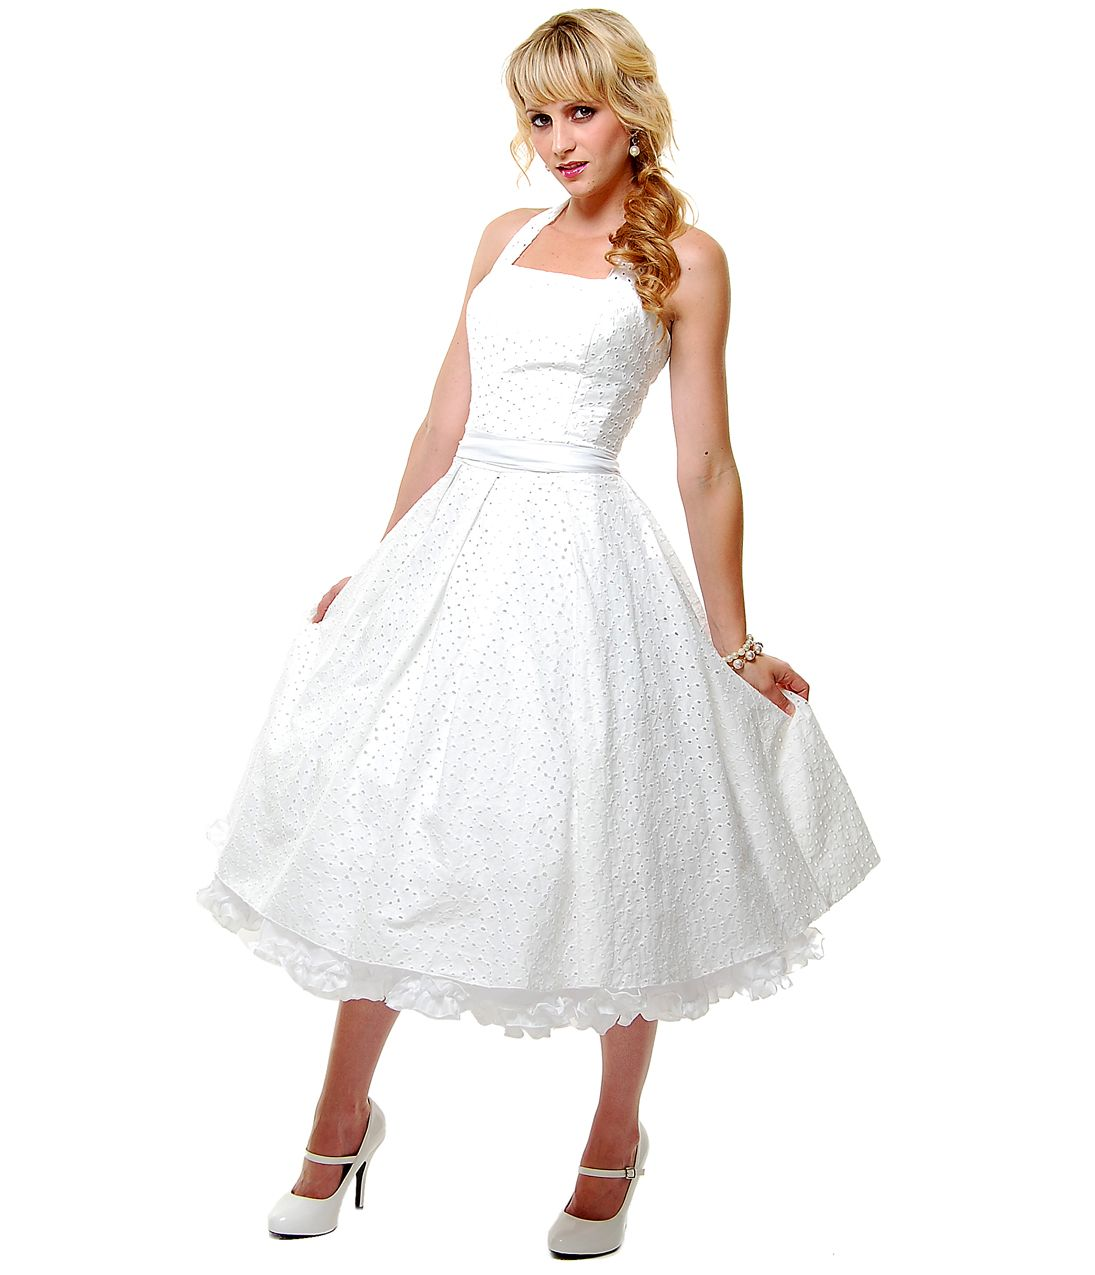 Off white cotton eyelet flirty halter swing dress pinup style